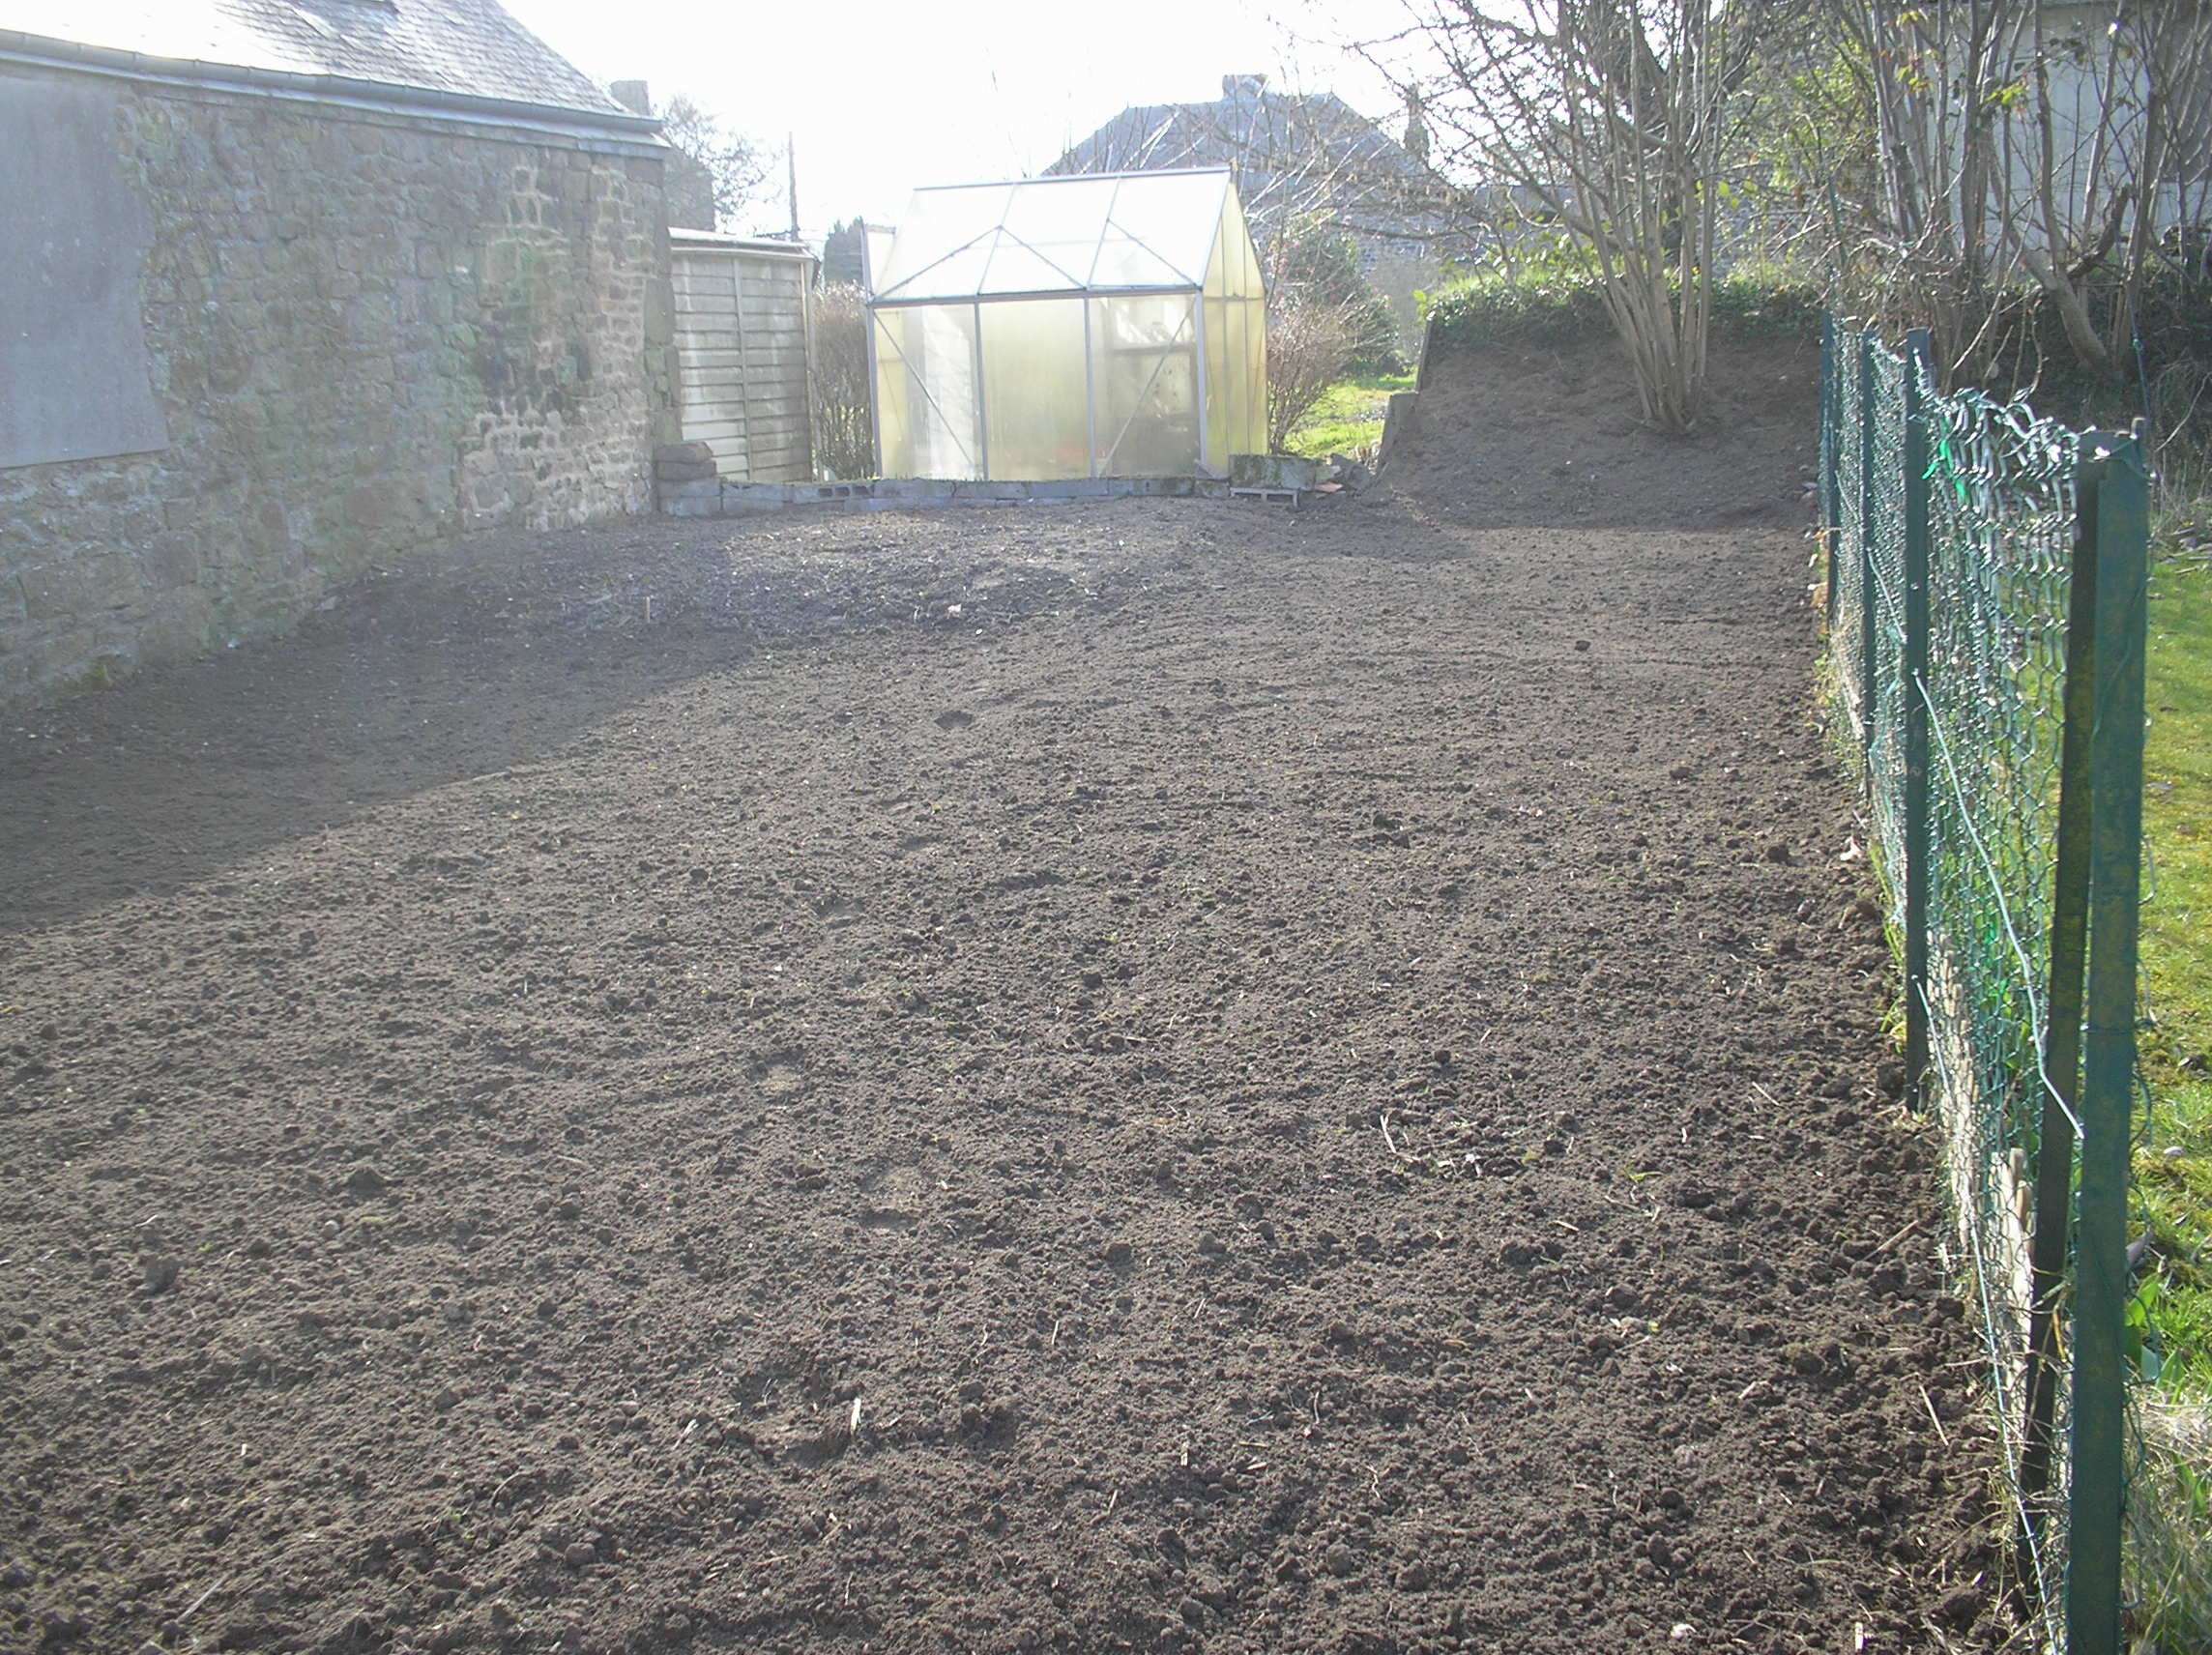 garden maintenance Rotovated and ready for anything